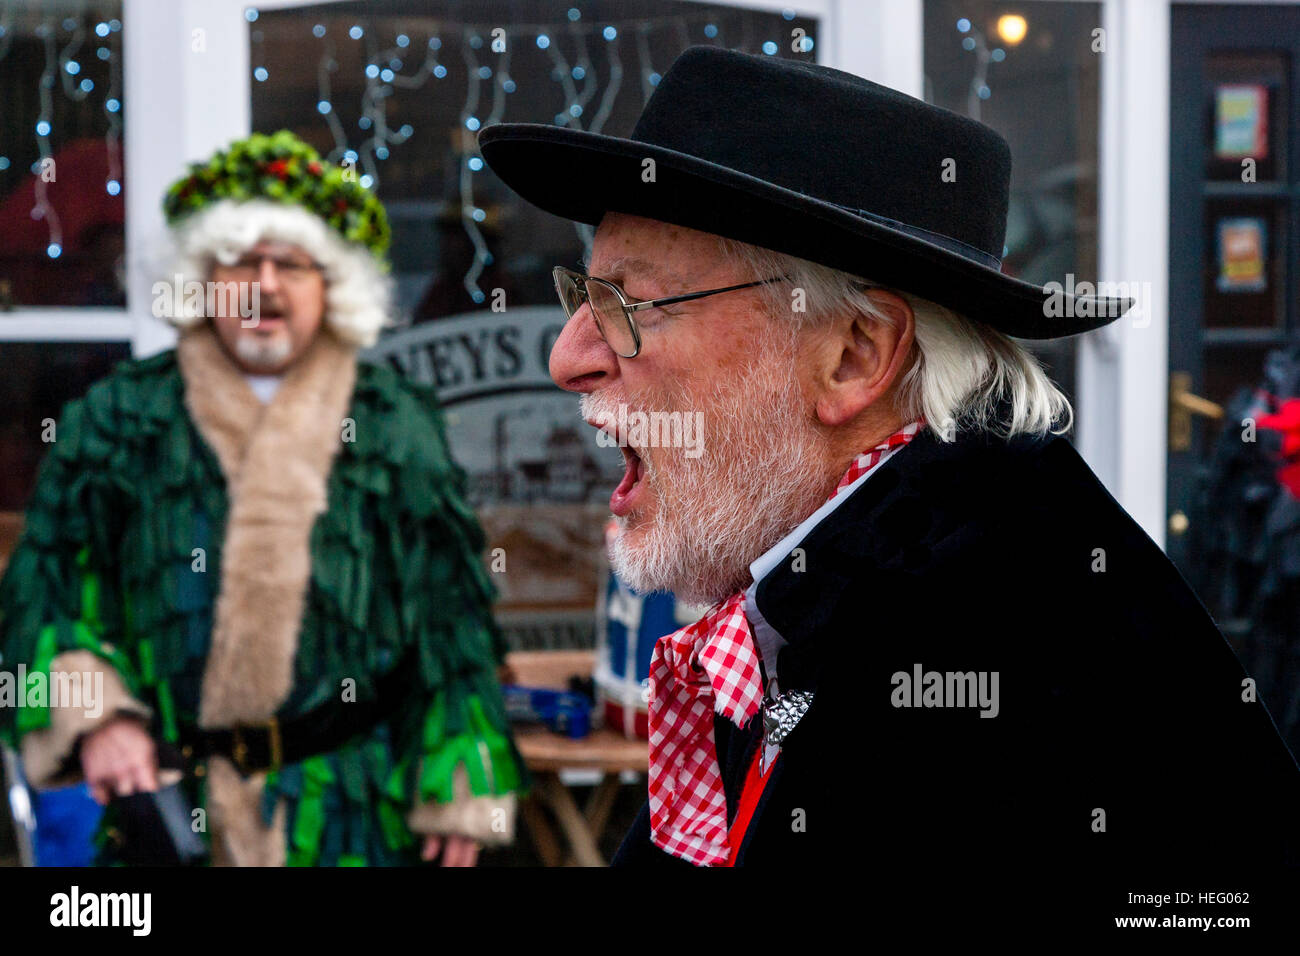 Ditchling Mummers Perform A Traditional Play In Aid Of Charity In Lewes Town Centre, Lewes, Sussex, UK - Stock Image